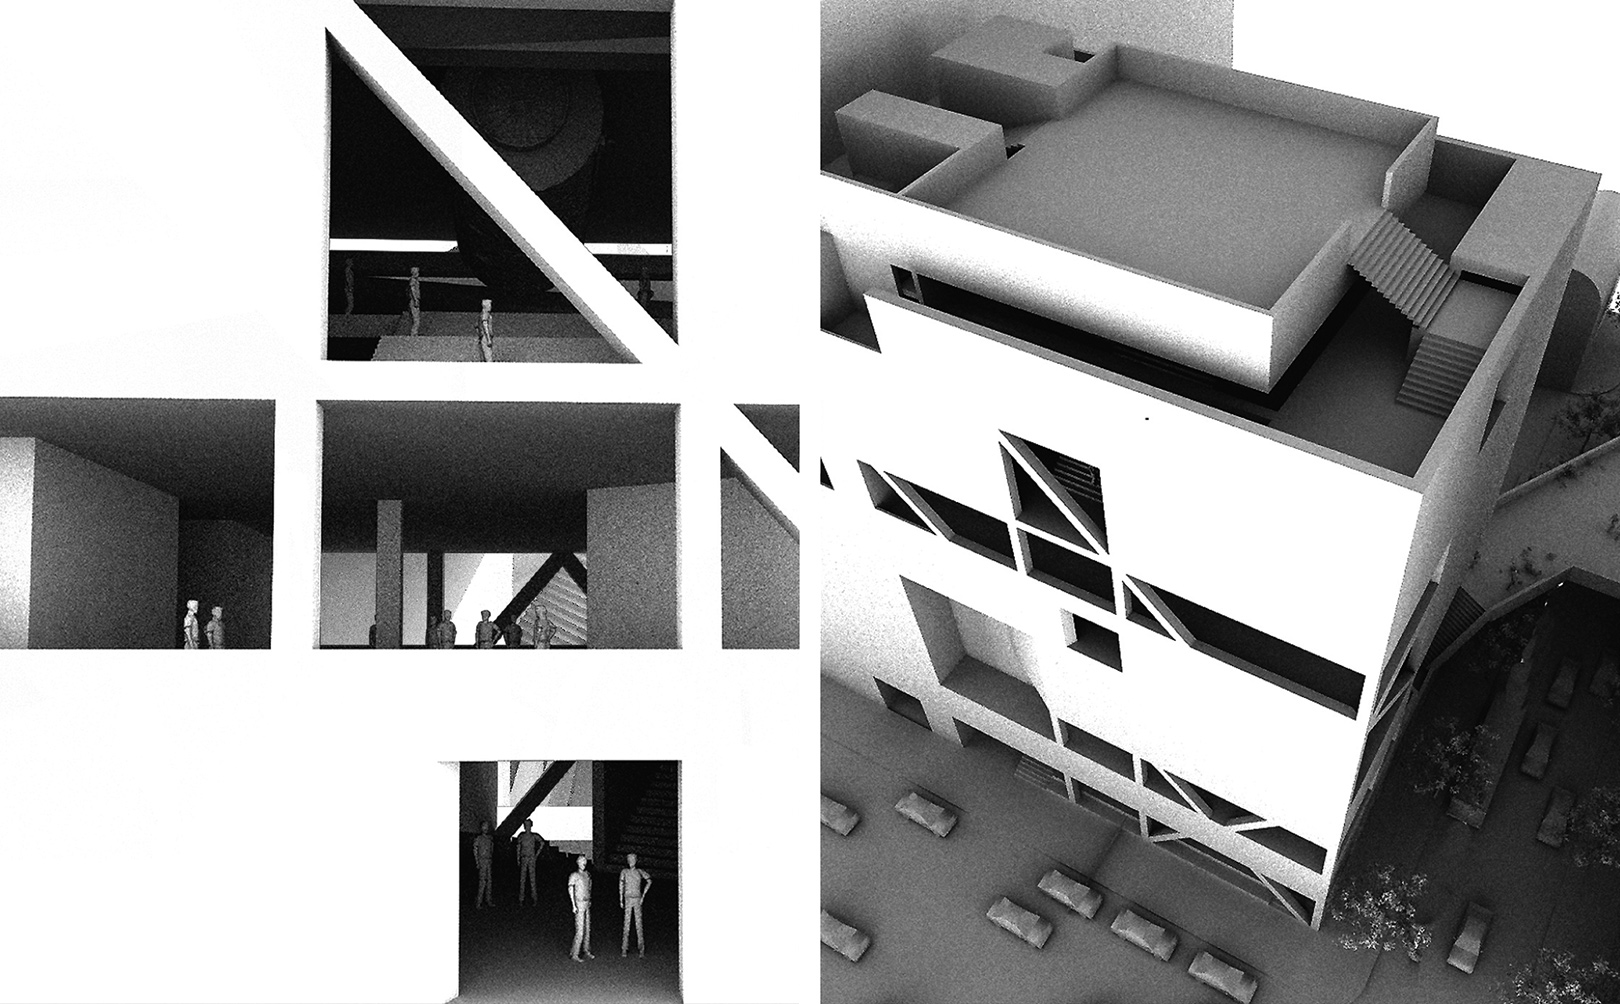 Pair of study aerial perspectives of SPCS looking into the main gallery space and above the layered roof decks